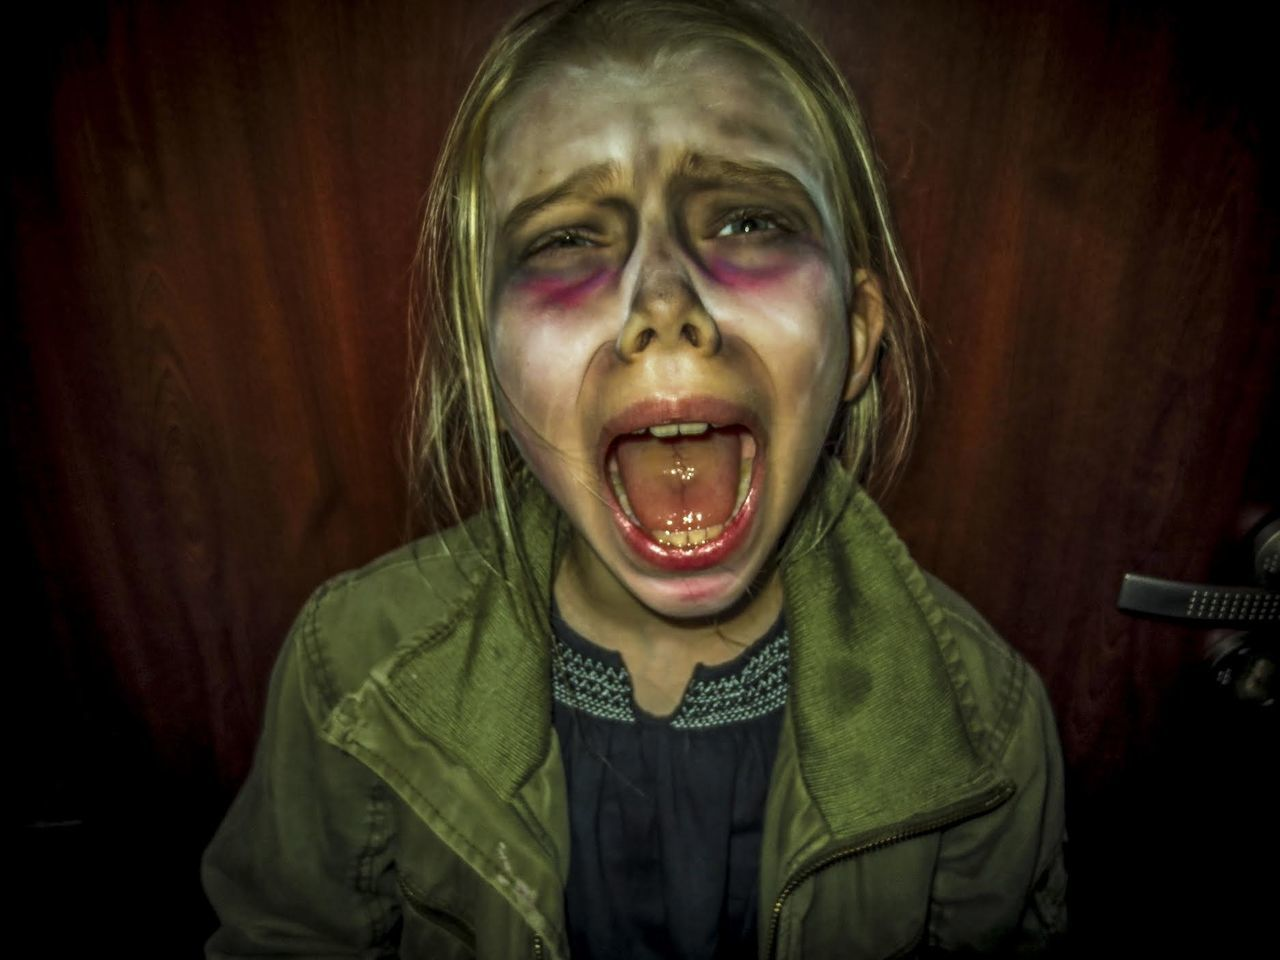 Close-Up Of Girl With Spooky Make-Up Screaming While Standing Against Door During Halloween